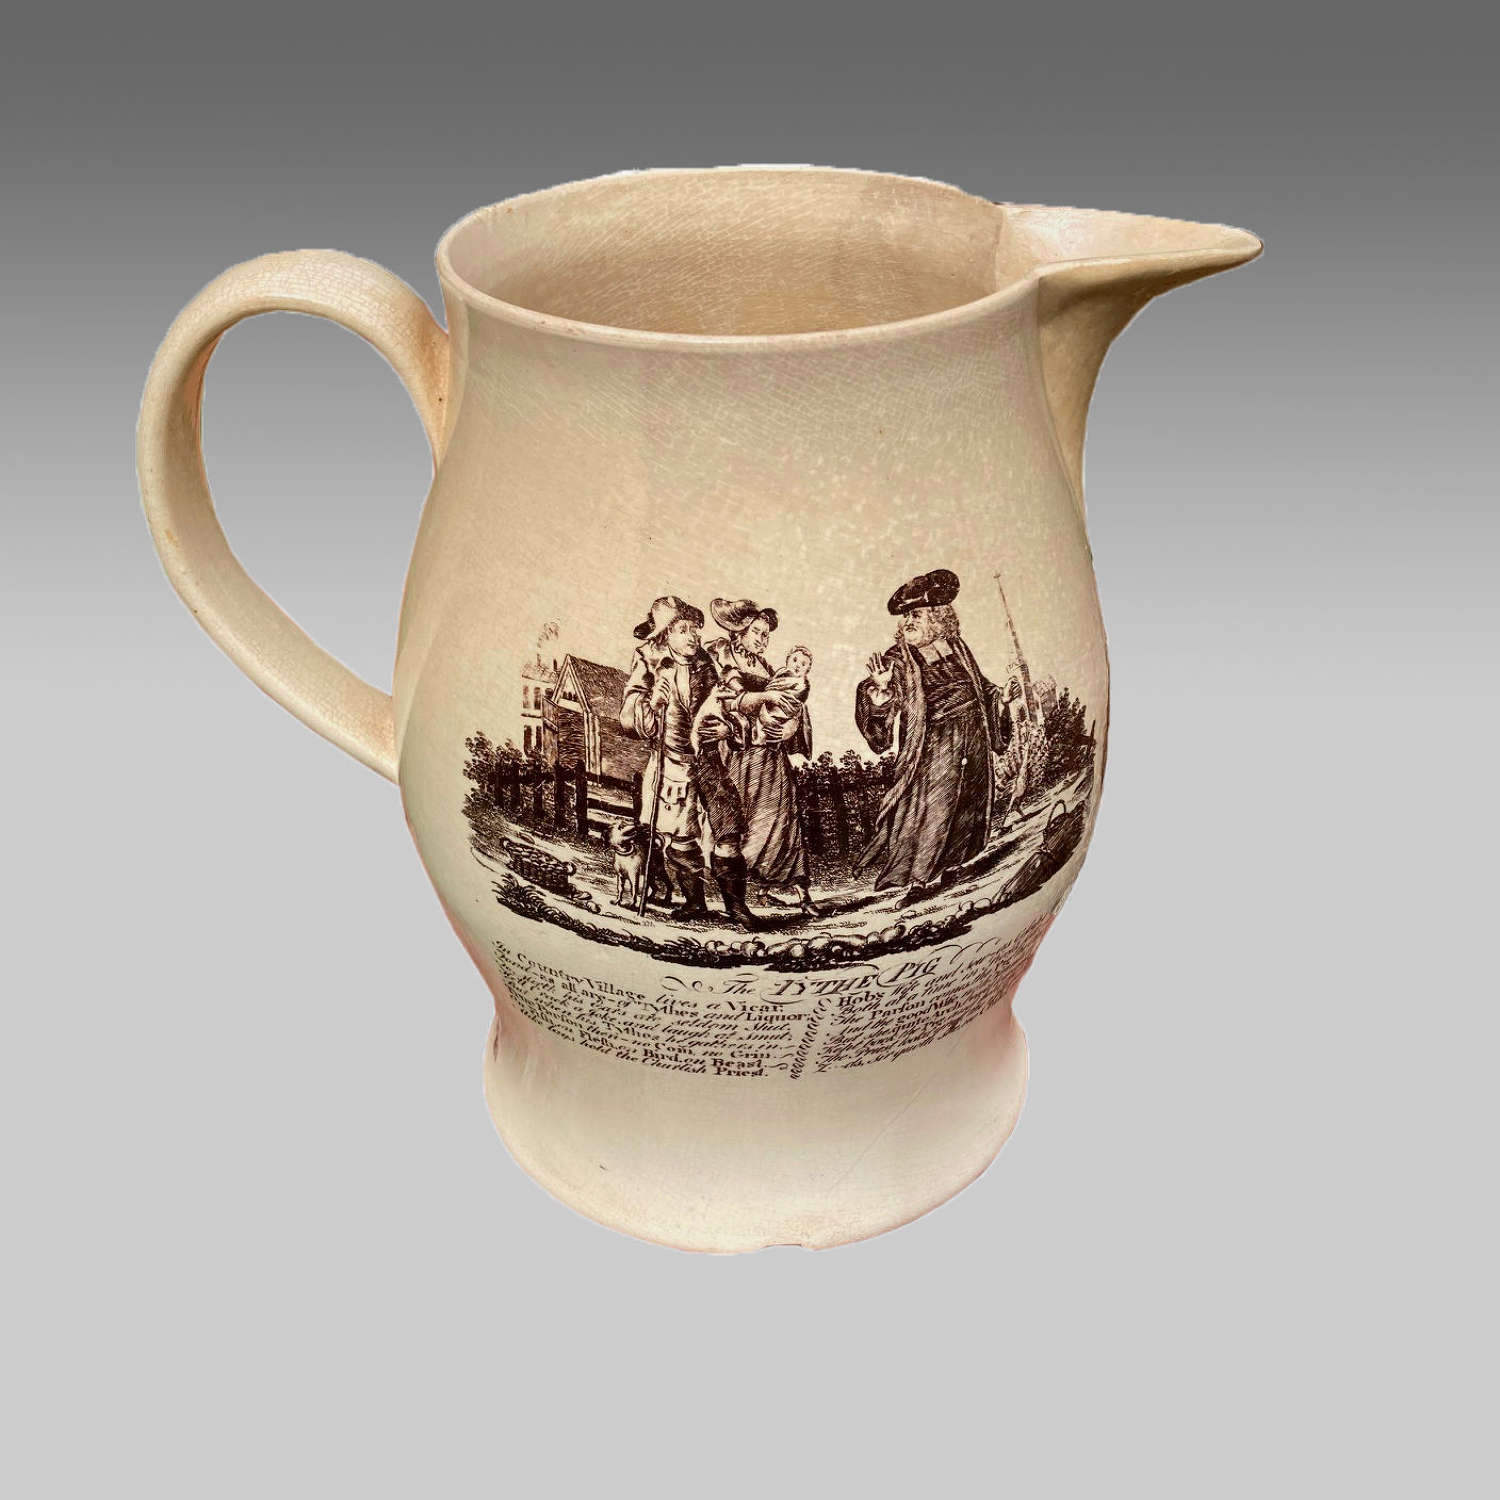 Georgian creamware jug with The Tythe Pig and Poor Jack